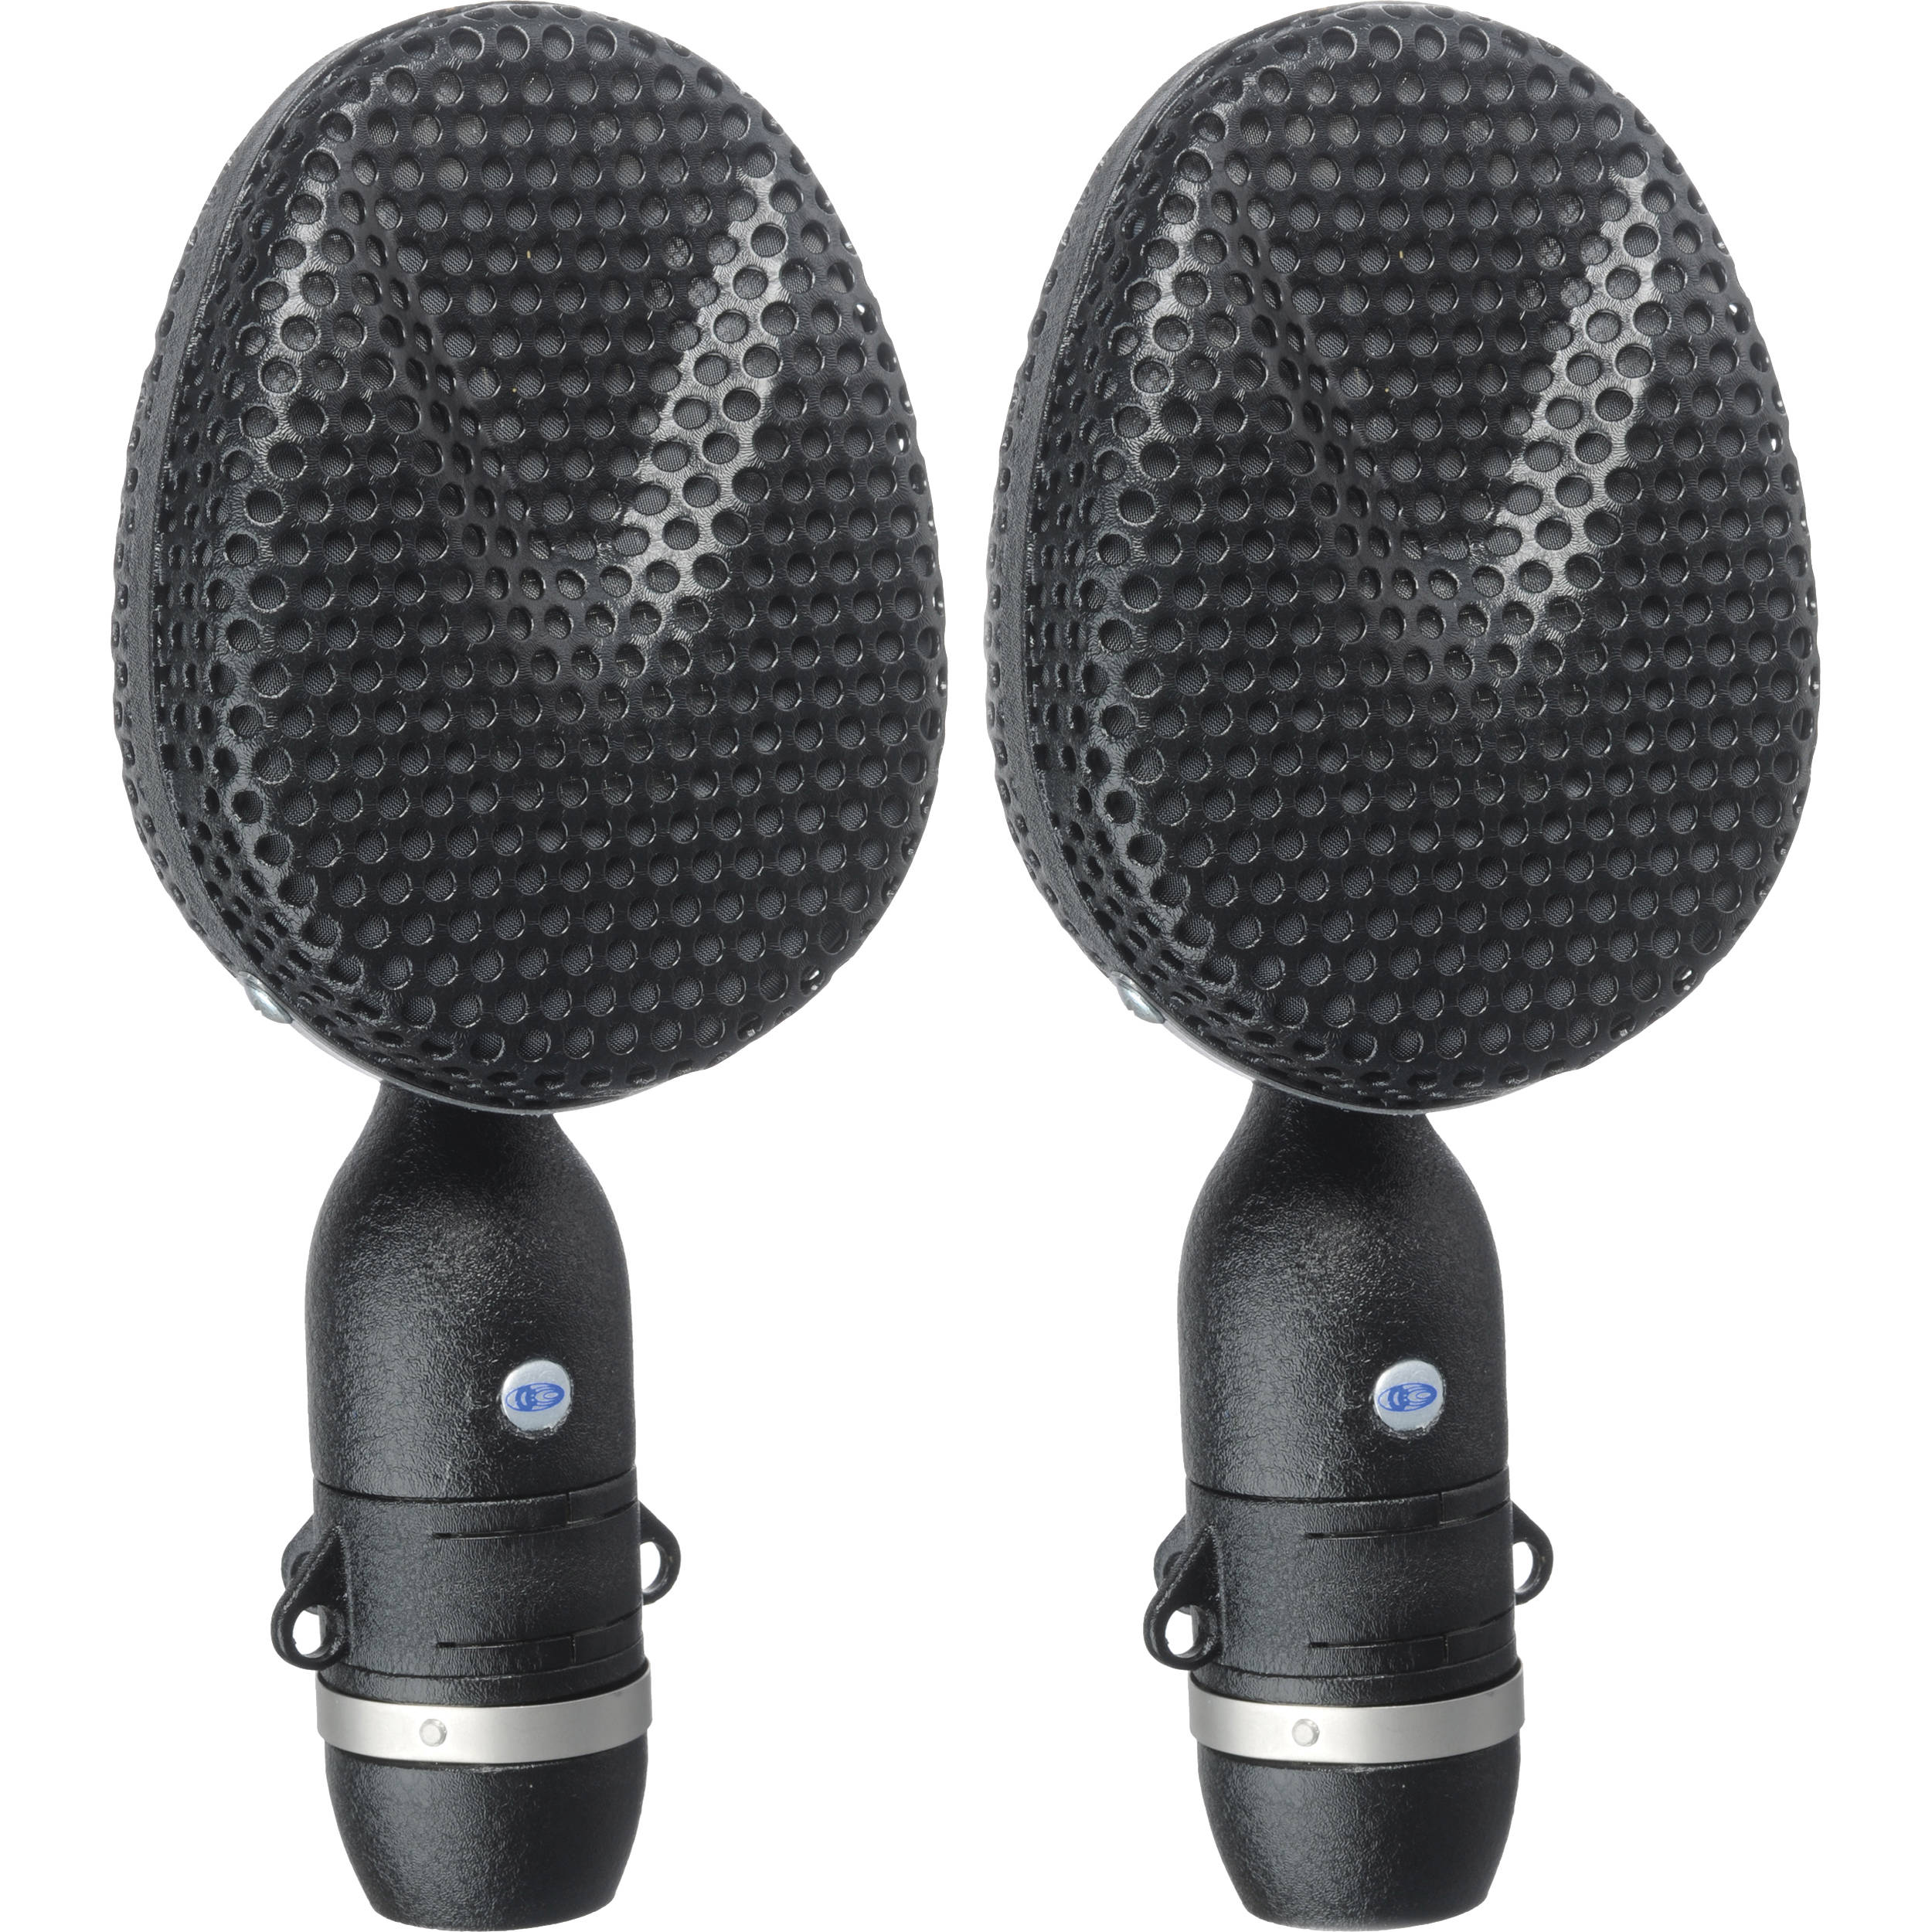 Coles Microphones 4038 Studio Ribbon Microphone 4038 Mp Bh